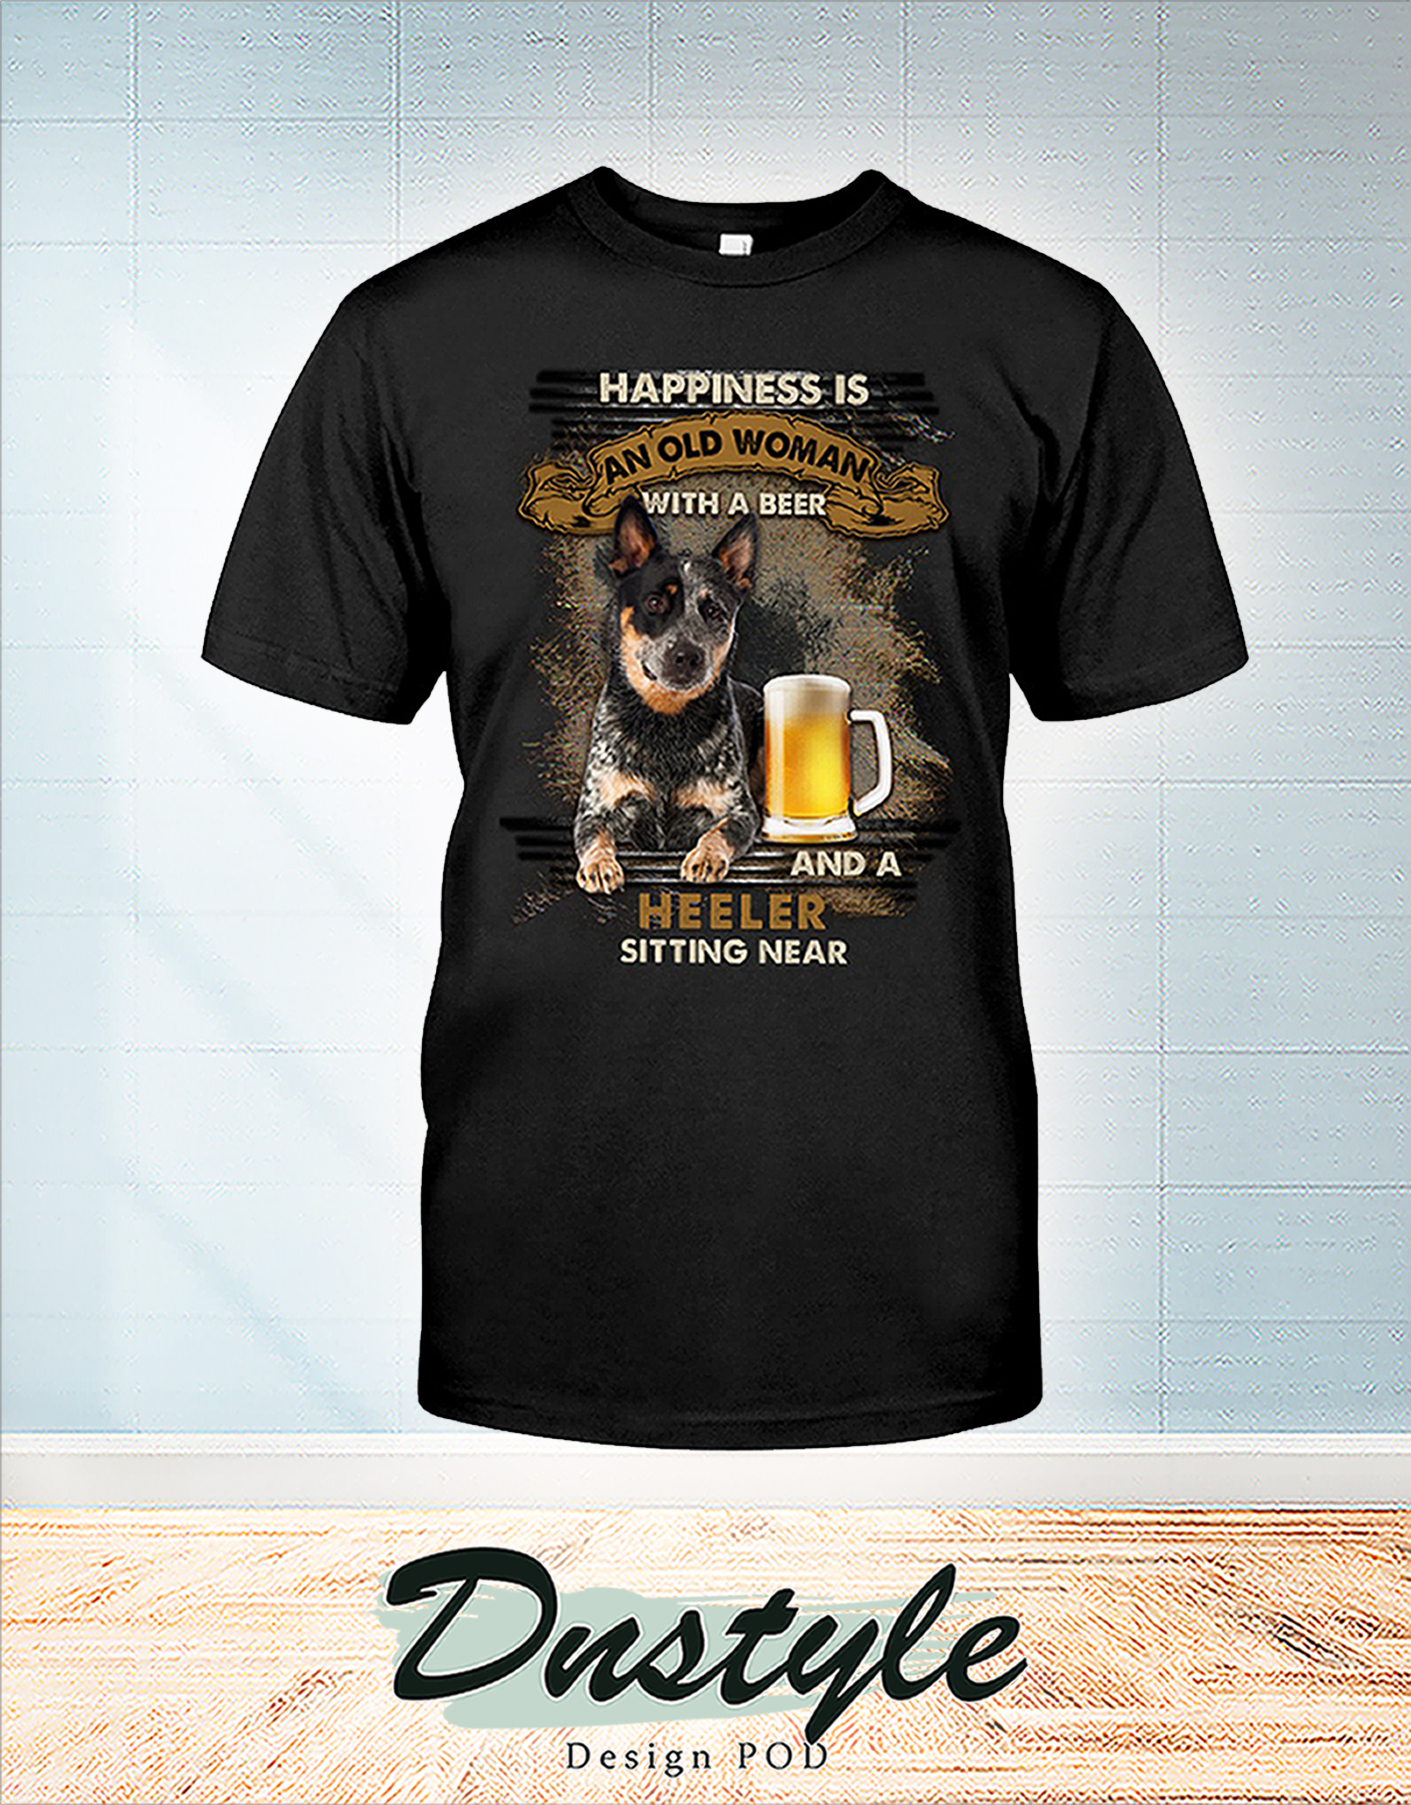 Happiness is an old man with a beer and a heeler sitting near shirt